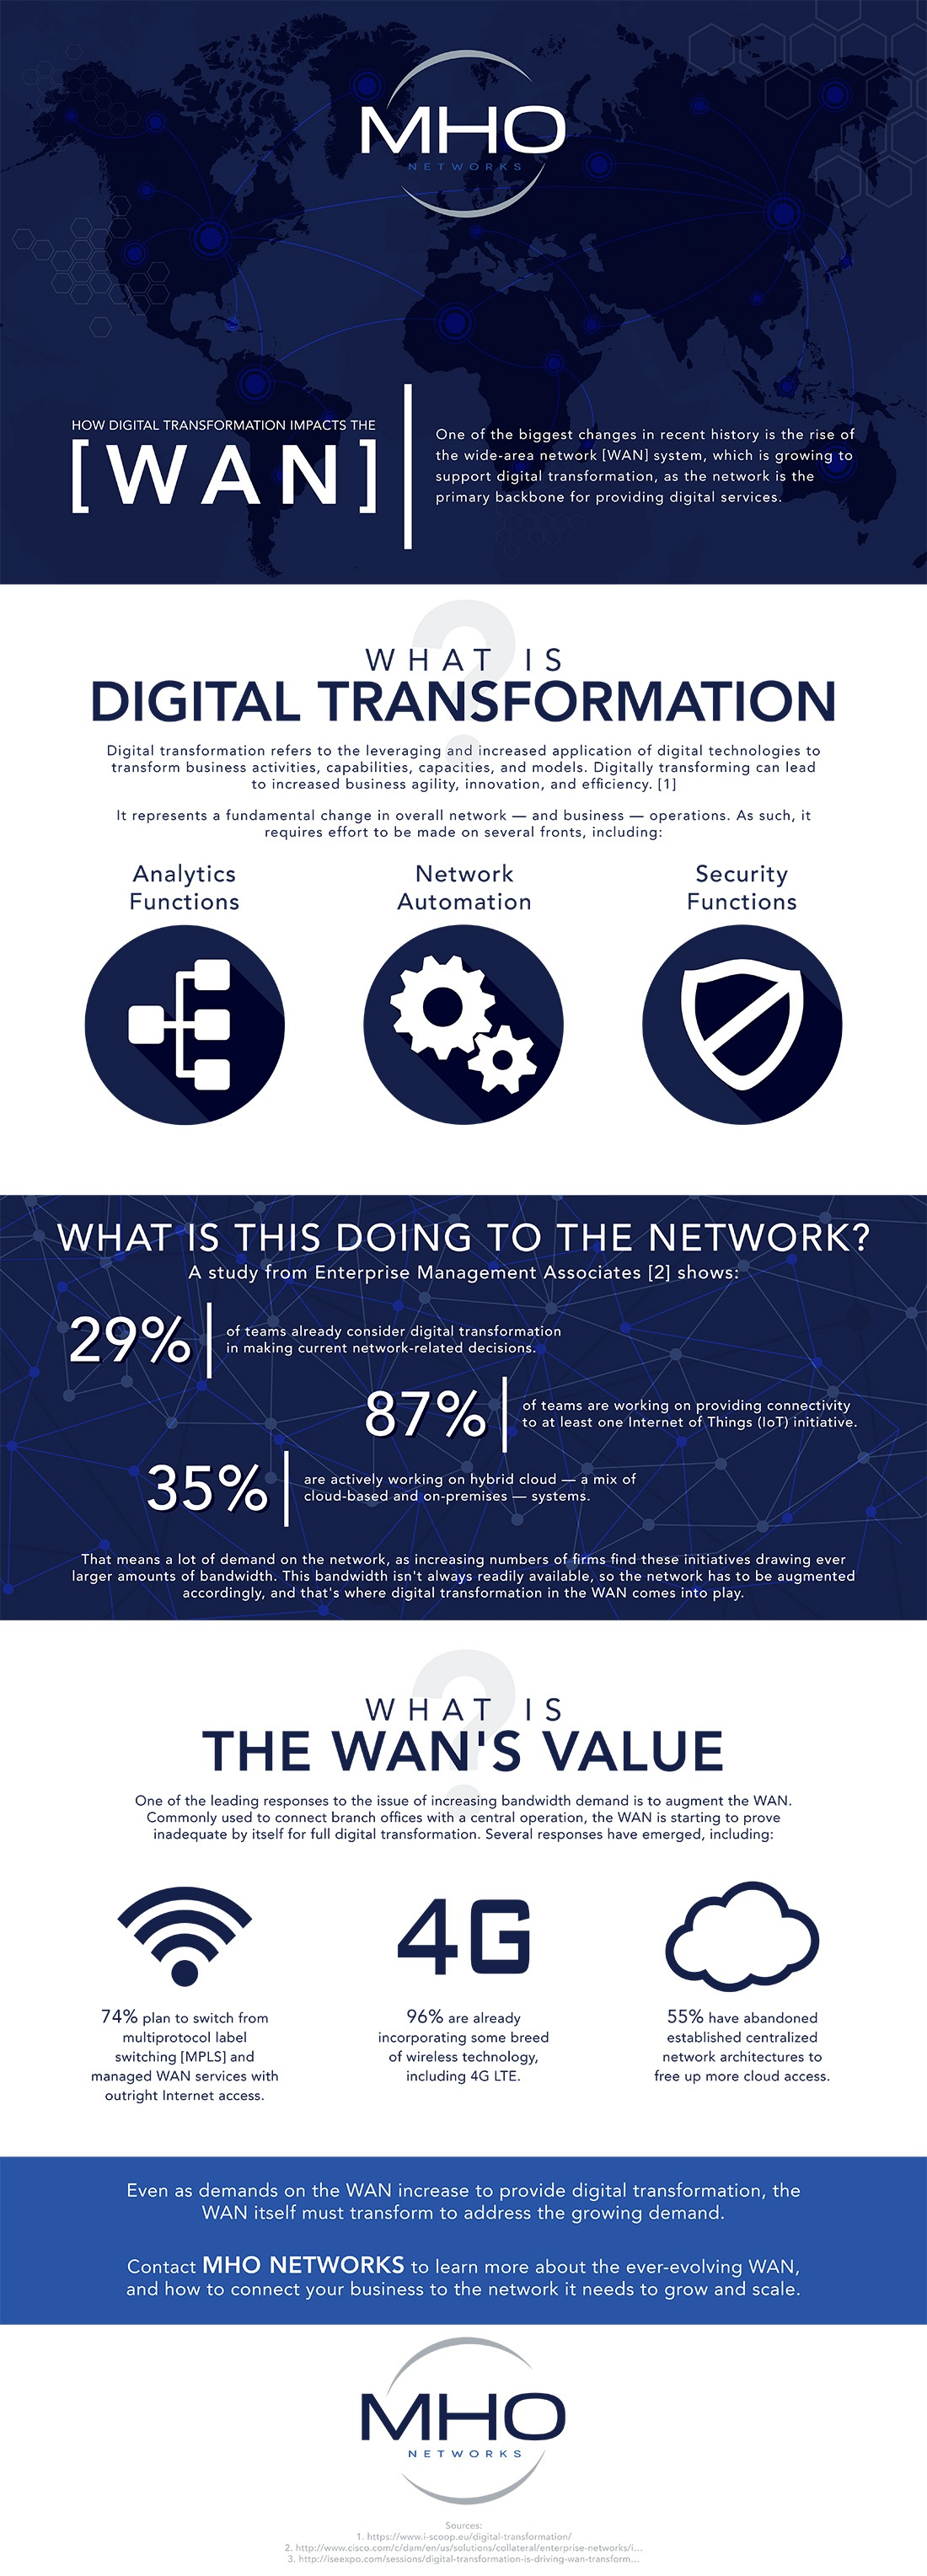 Digital transformation is improving the WAN's value for businesses like yours.